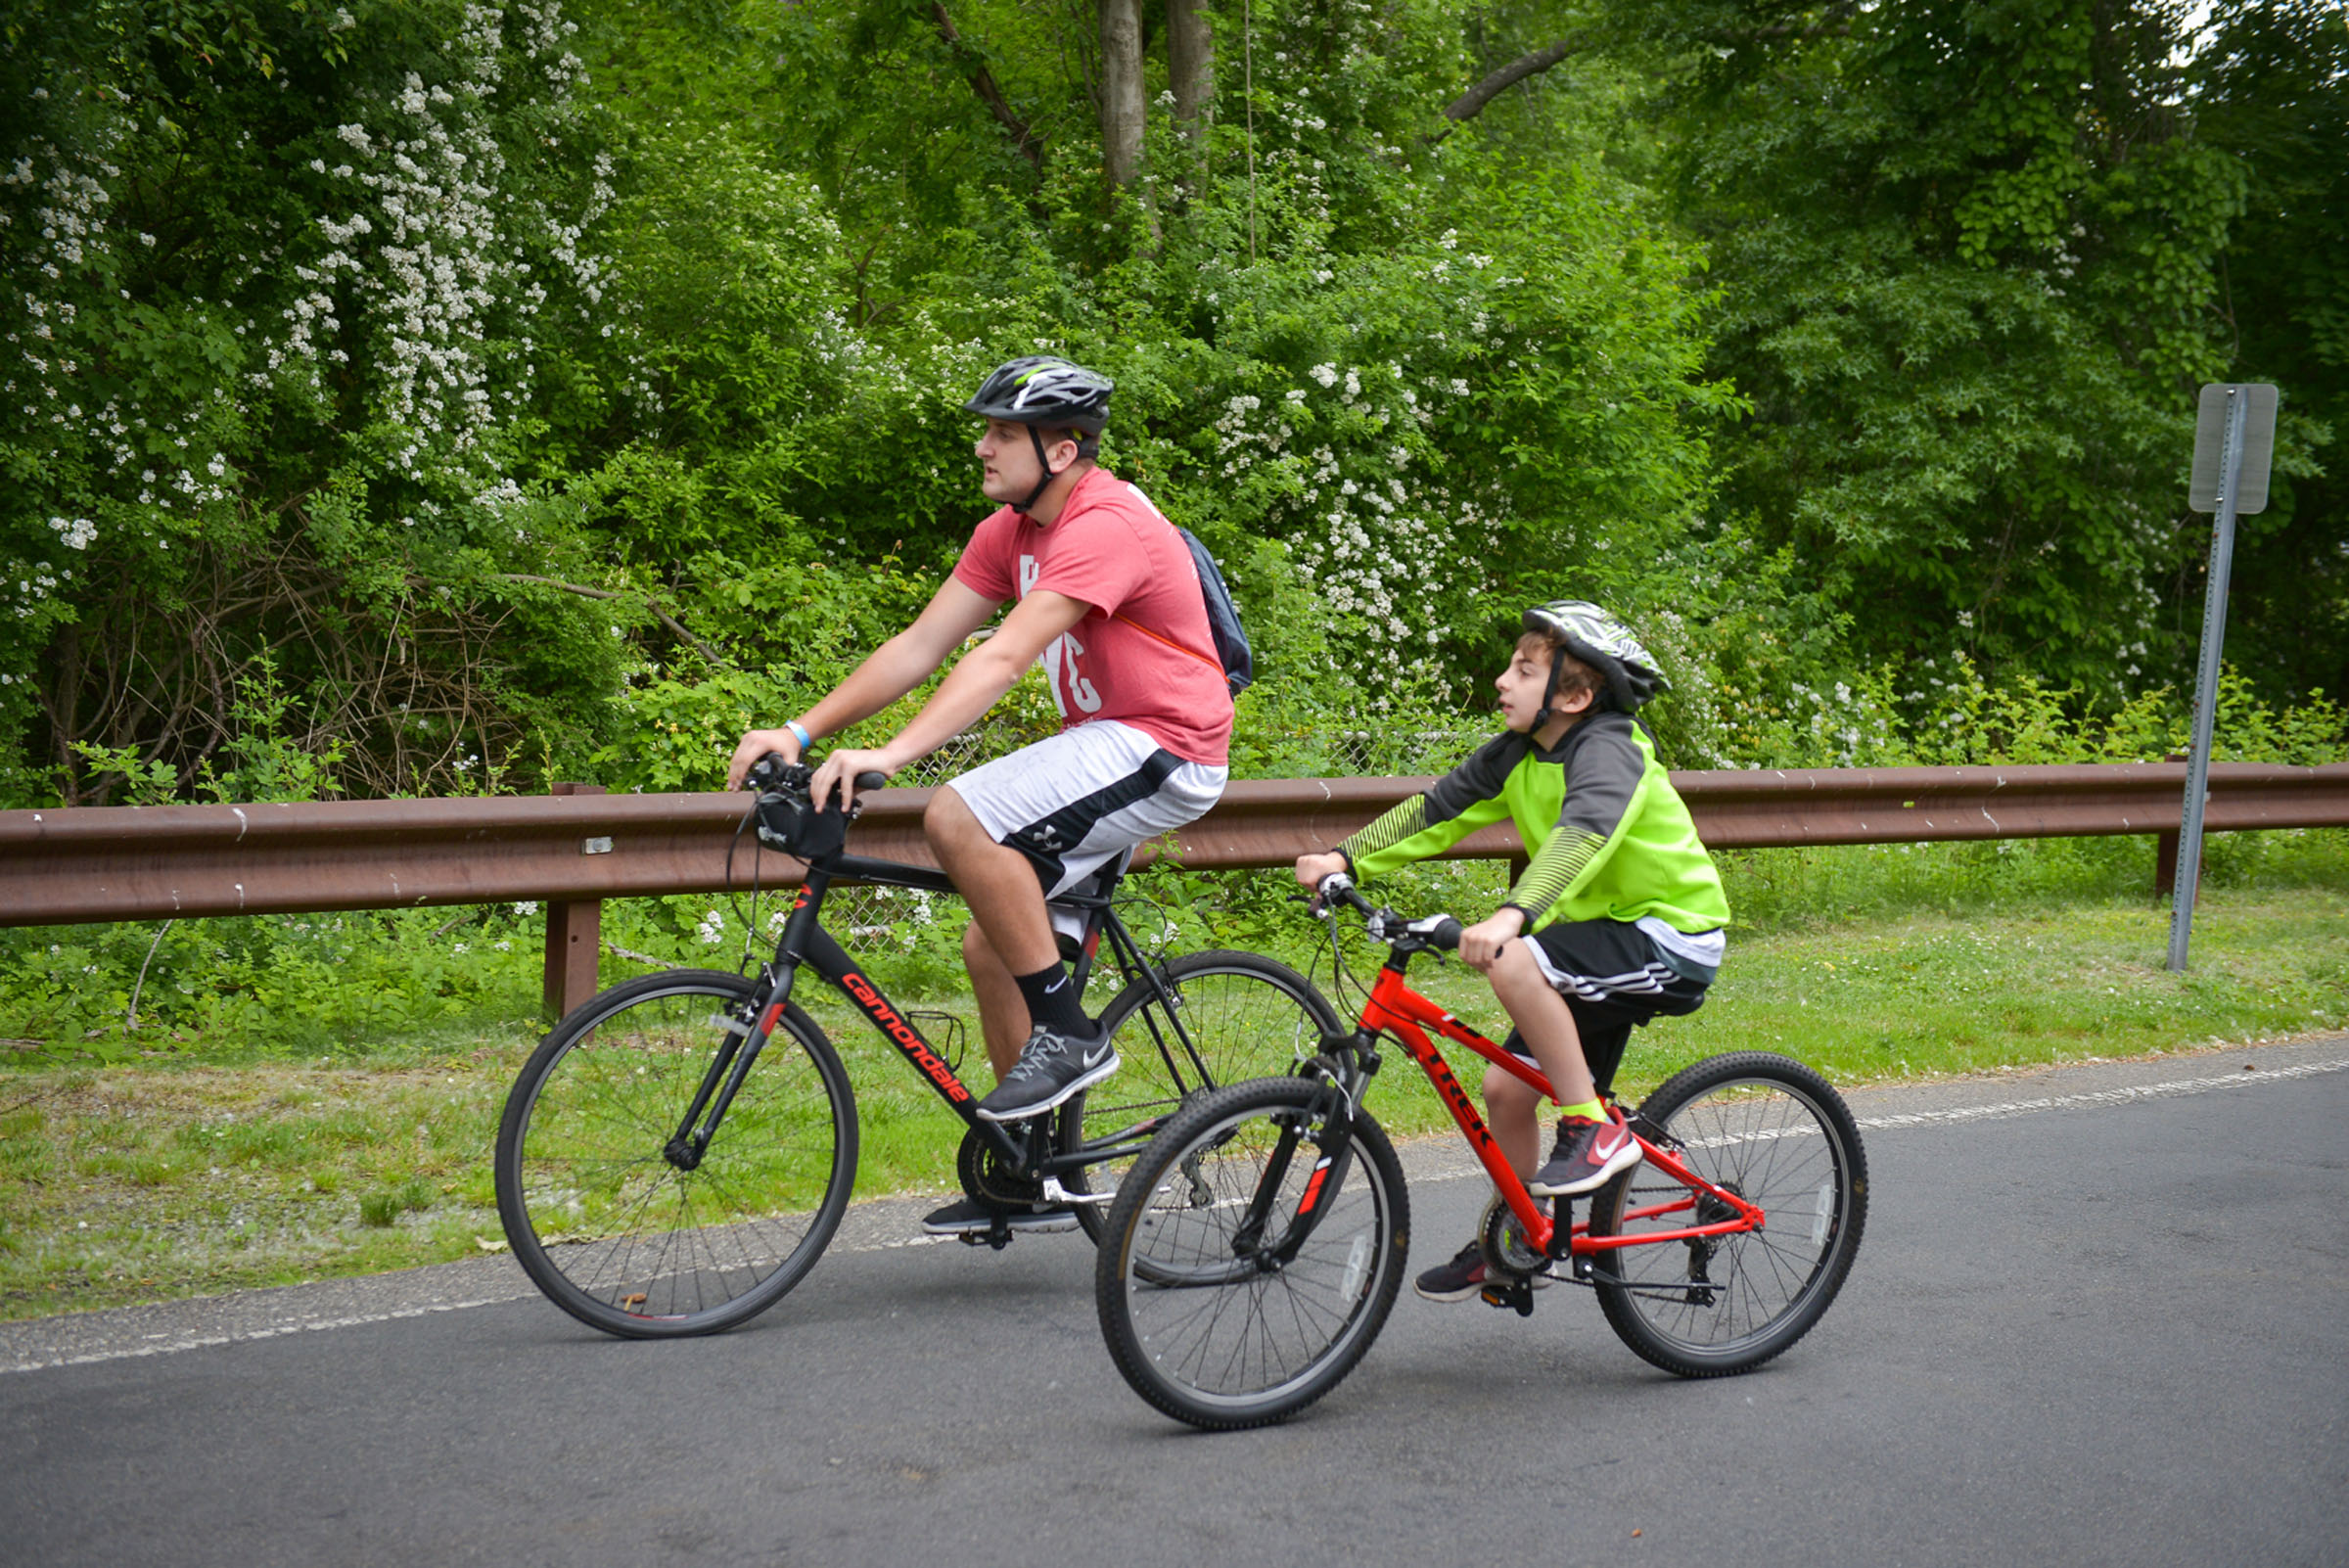 2017-06-04 GTD4A Charity Bike Ride - BCC - Paramus NJ-2277.jpg